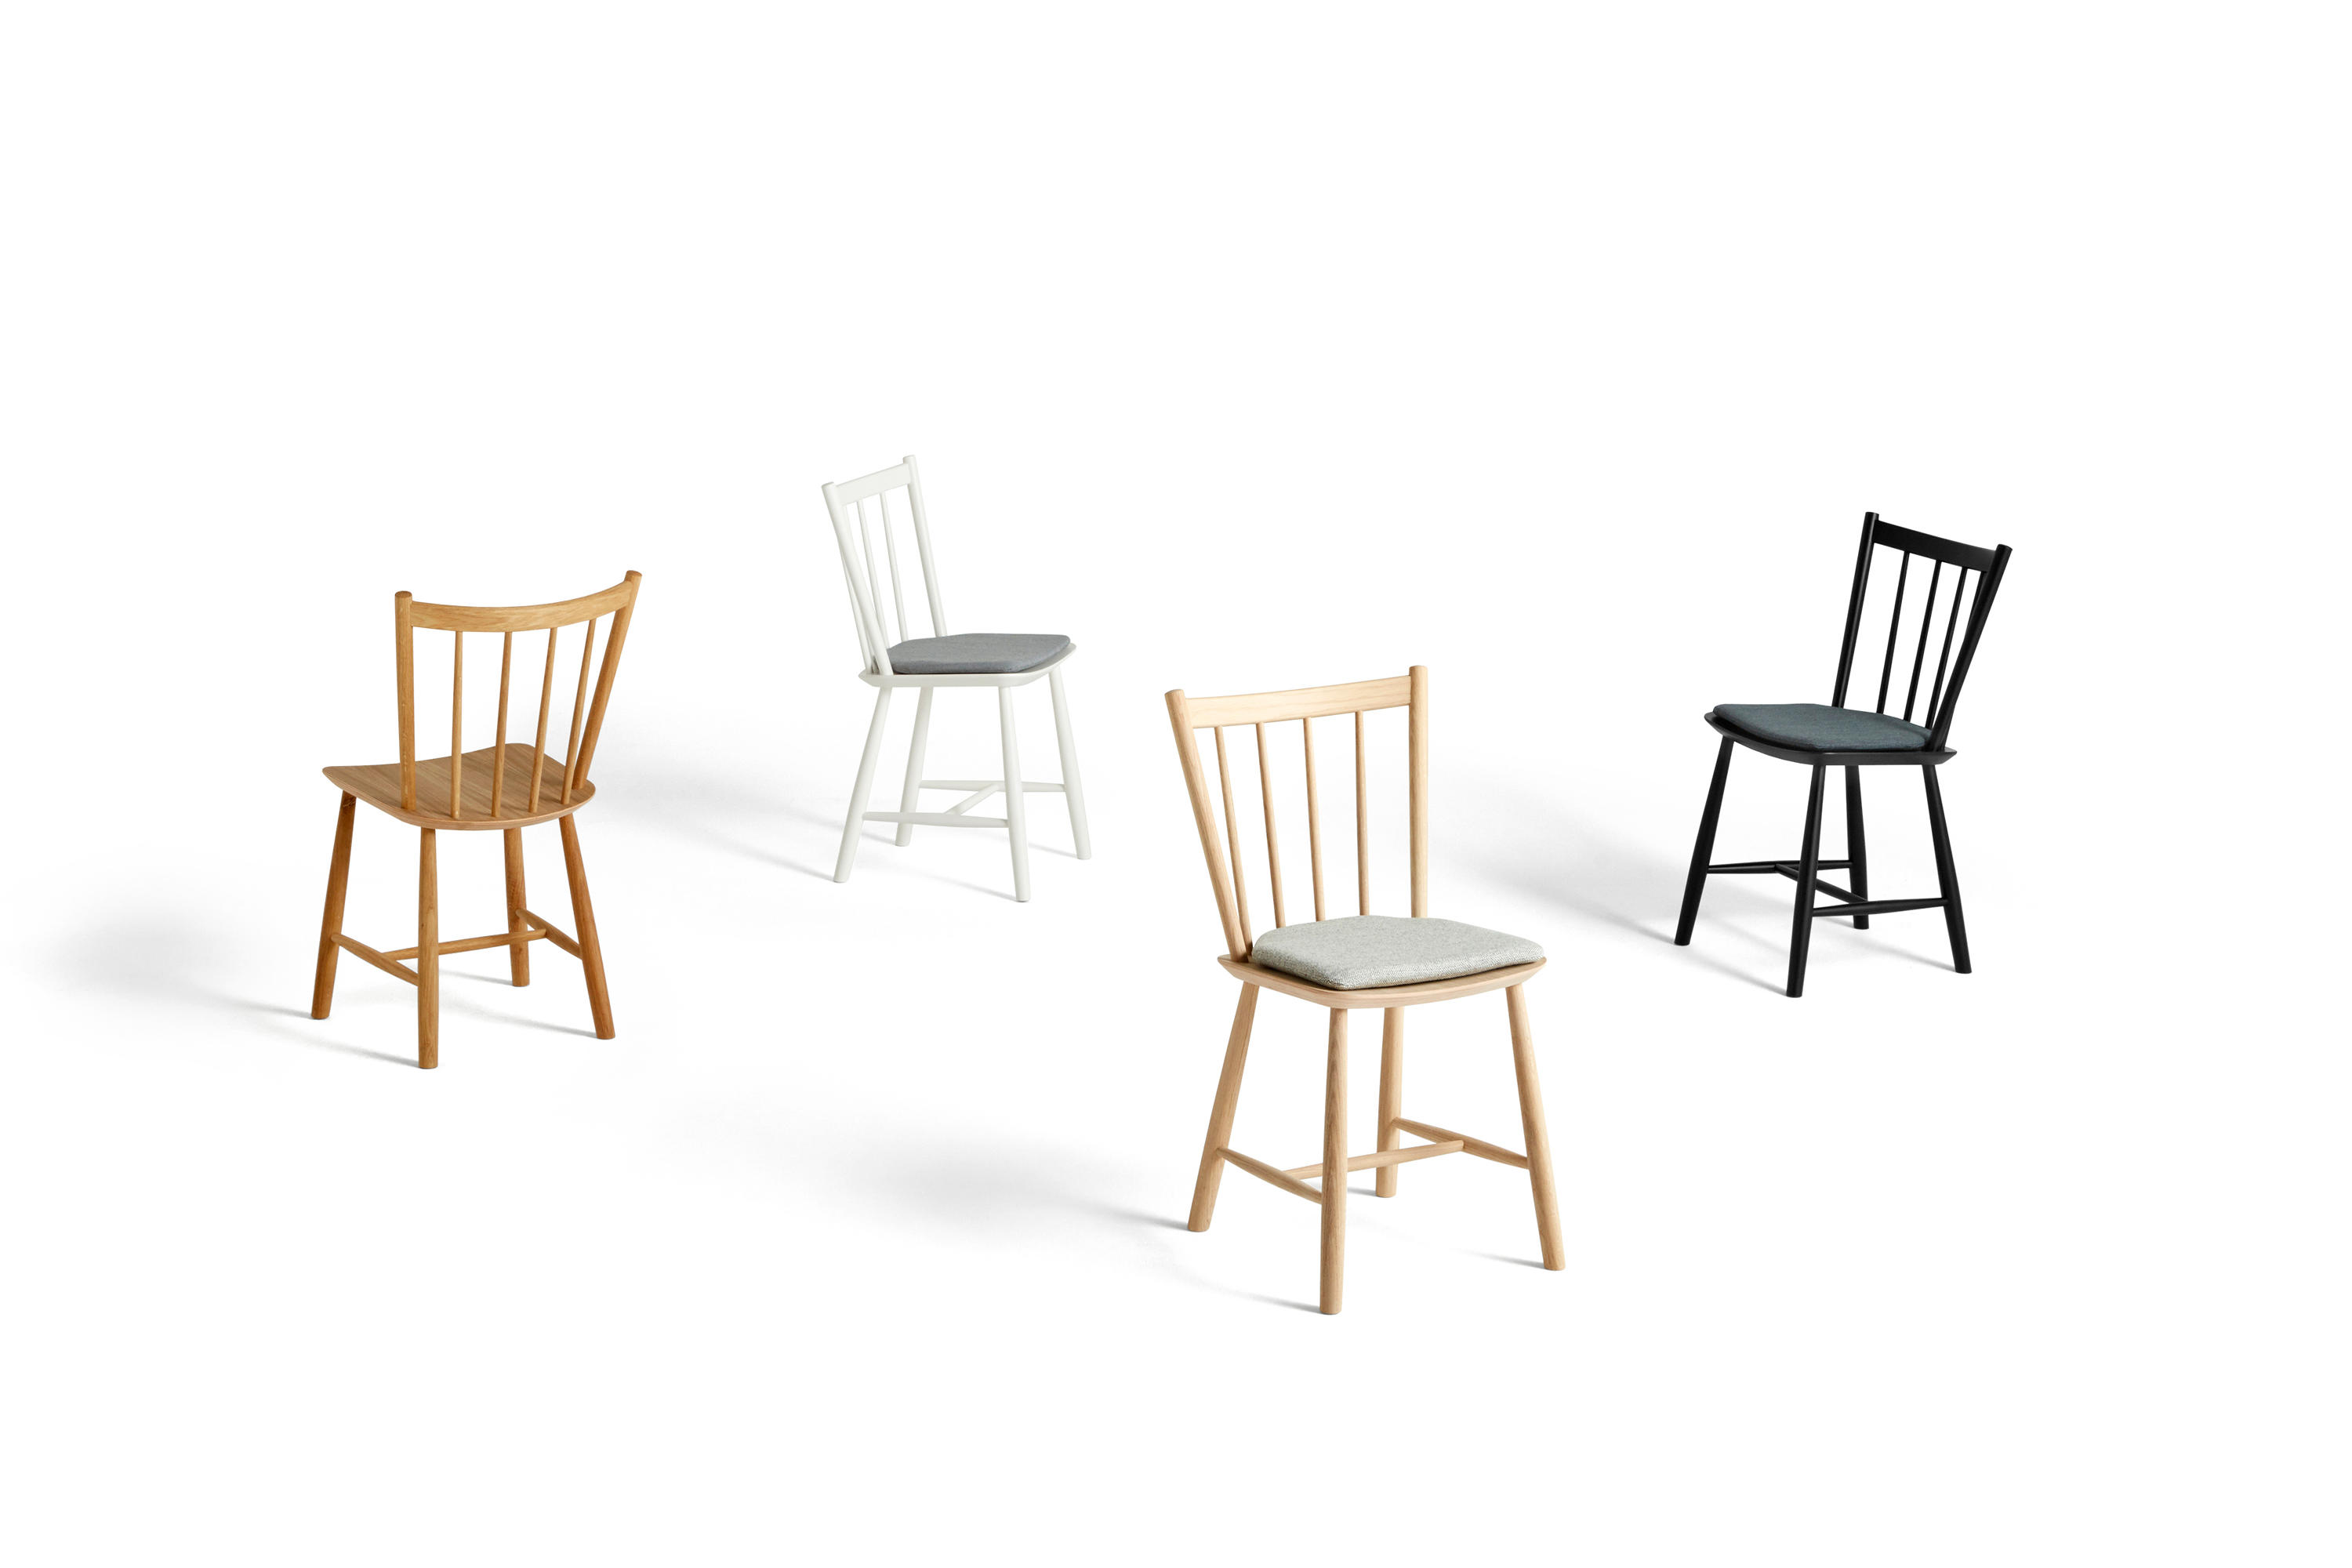 Enjoyable J41 Chairs From Hay Architonic Pdpeps Interior Chair Design Pdpepsorg